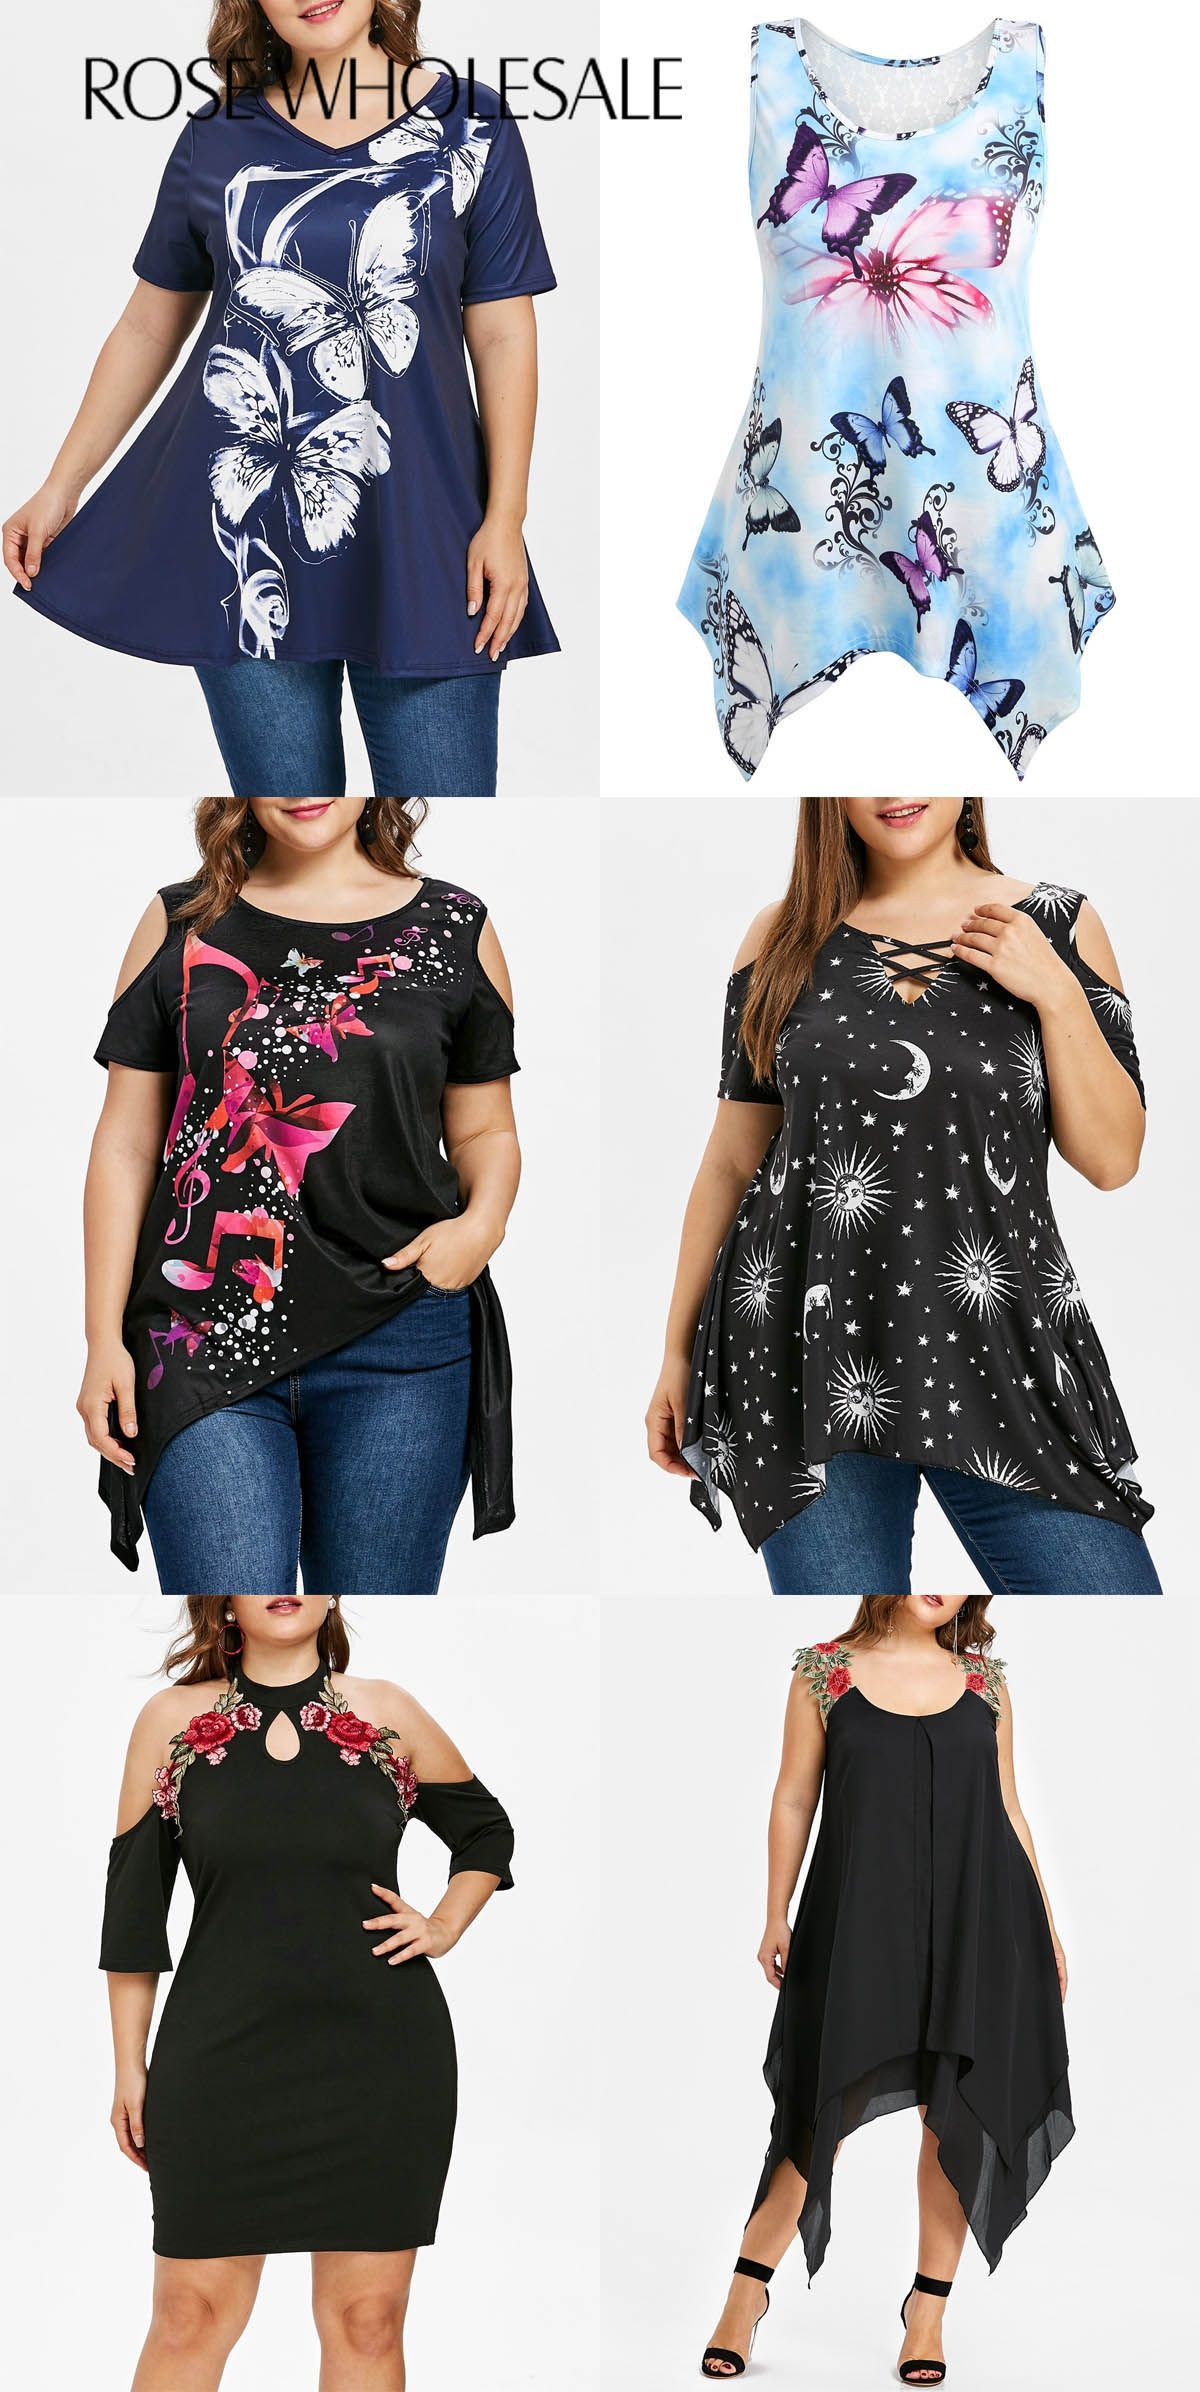 up to 70% off, Rosewholesale plus size tank tops and cold ...